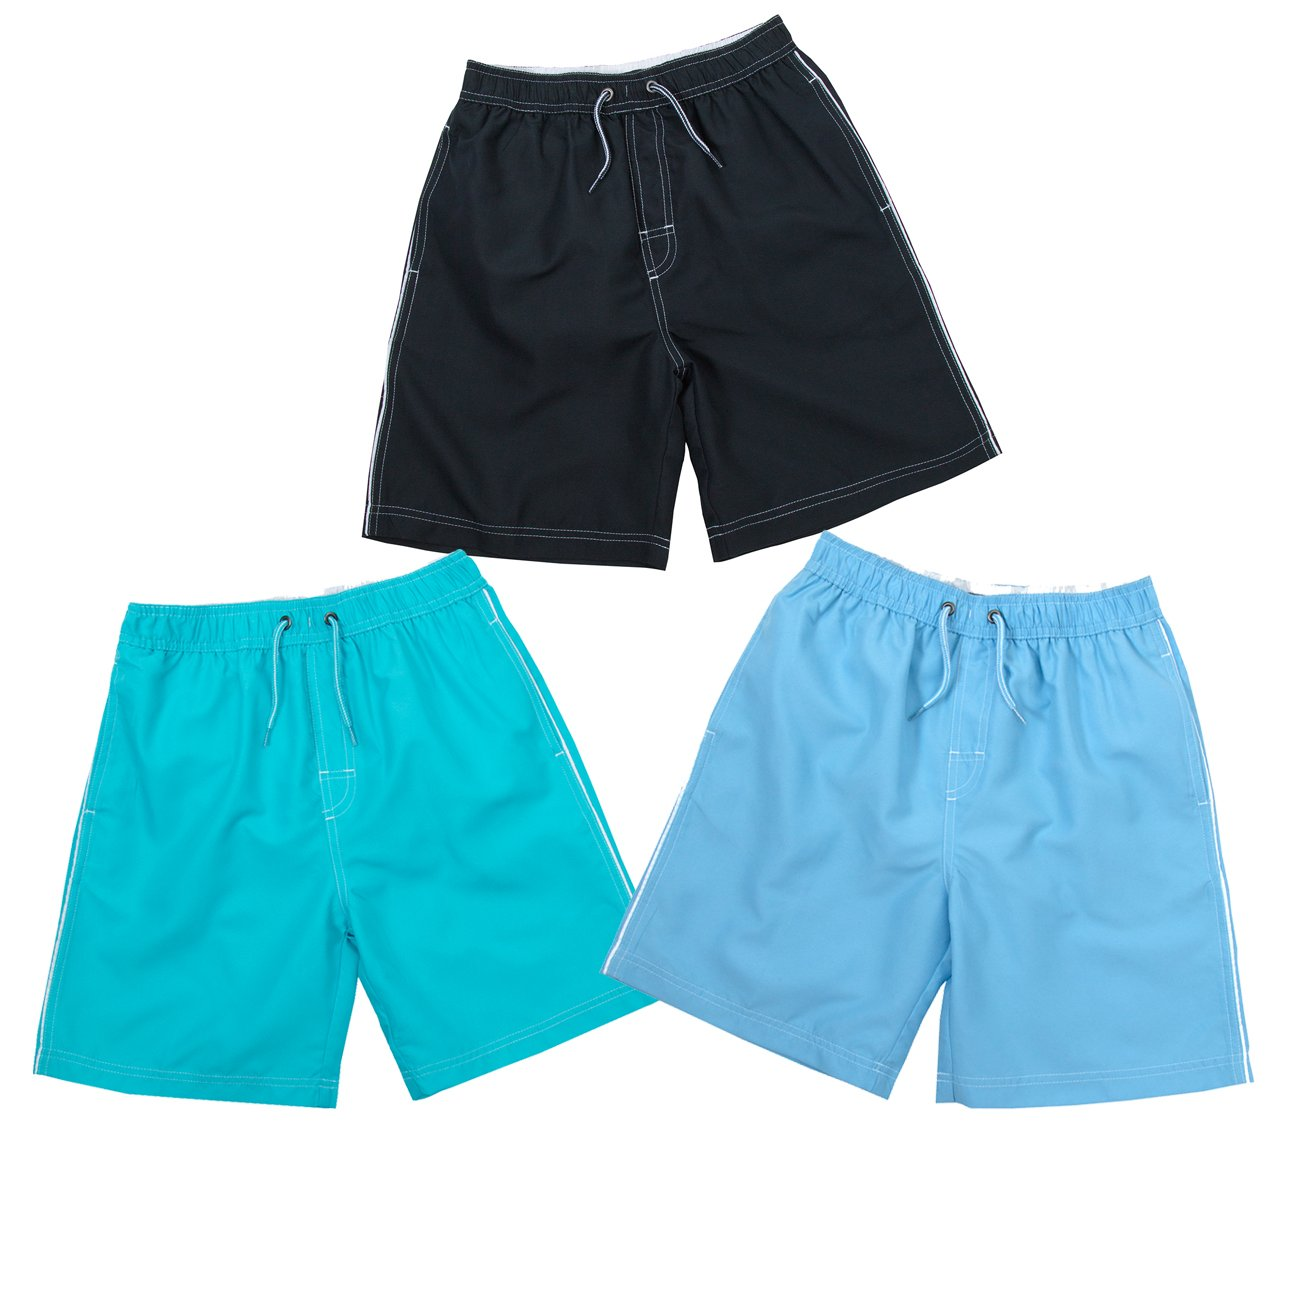 Cargo Bay Infant Boys Colourful Swim Shorts Perfect for Summer Beach Holidays Orange, Red and Navy 9-10 Years